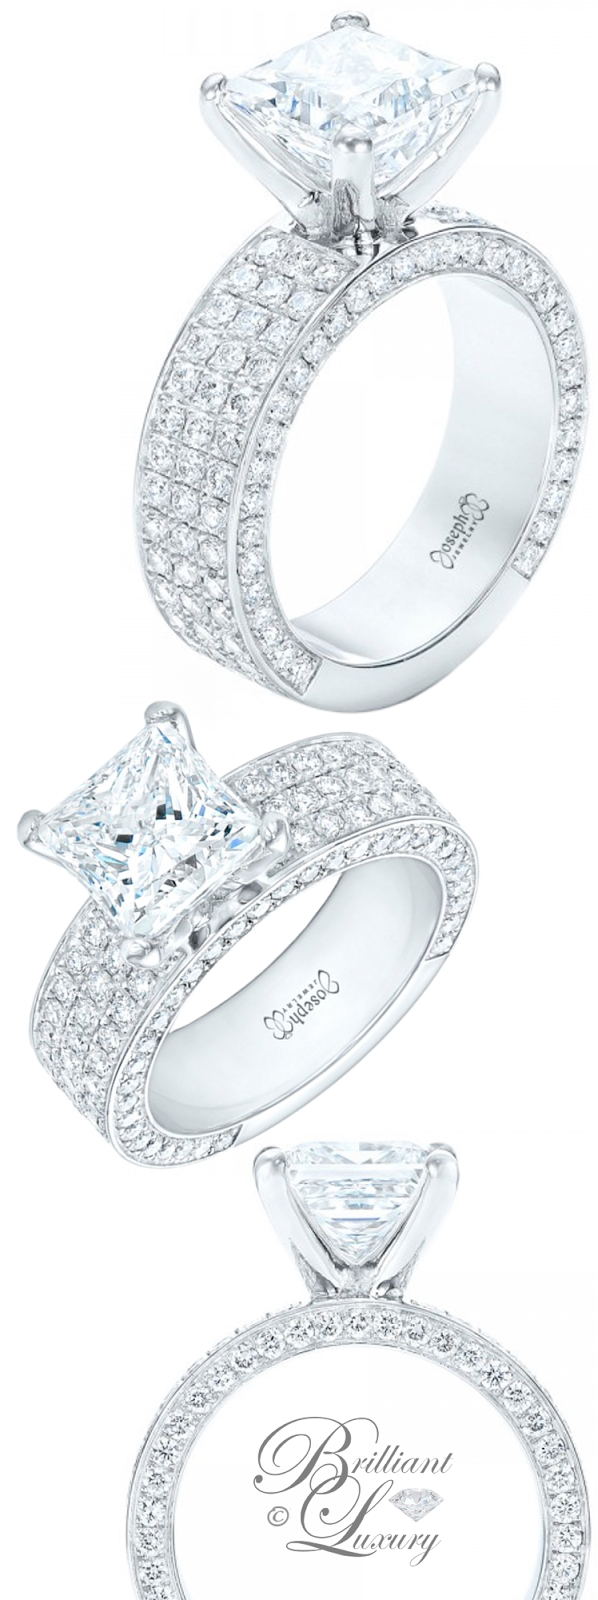 Brilliant Luxury ♦ Joseph Jewelry Pave Diamond Engagement Ring